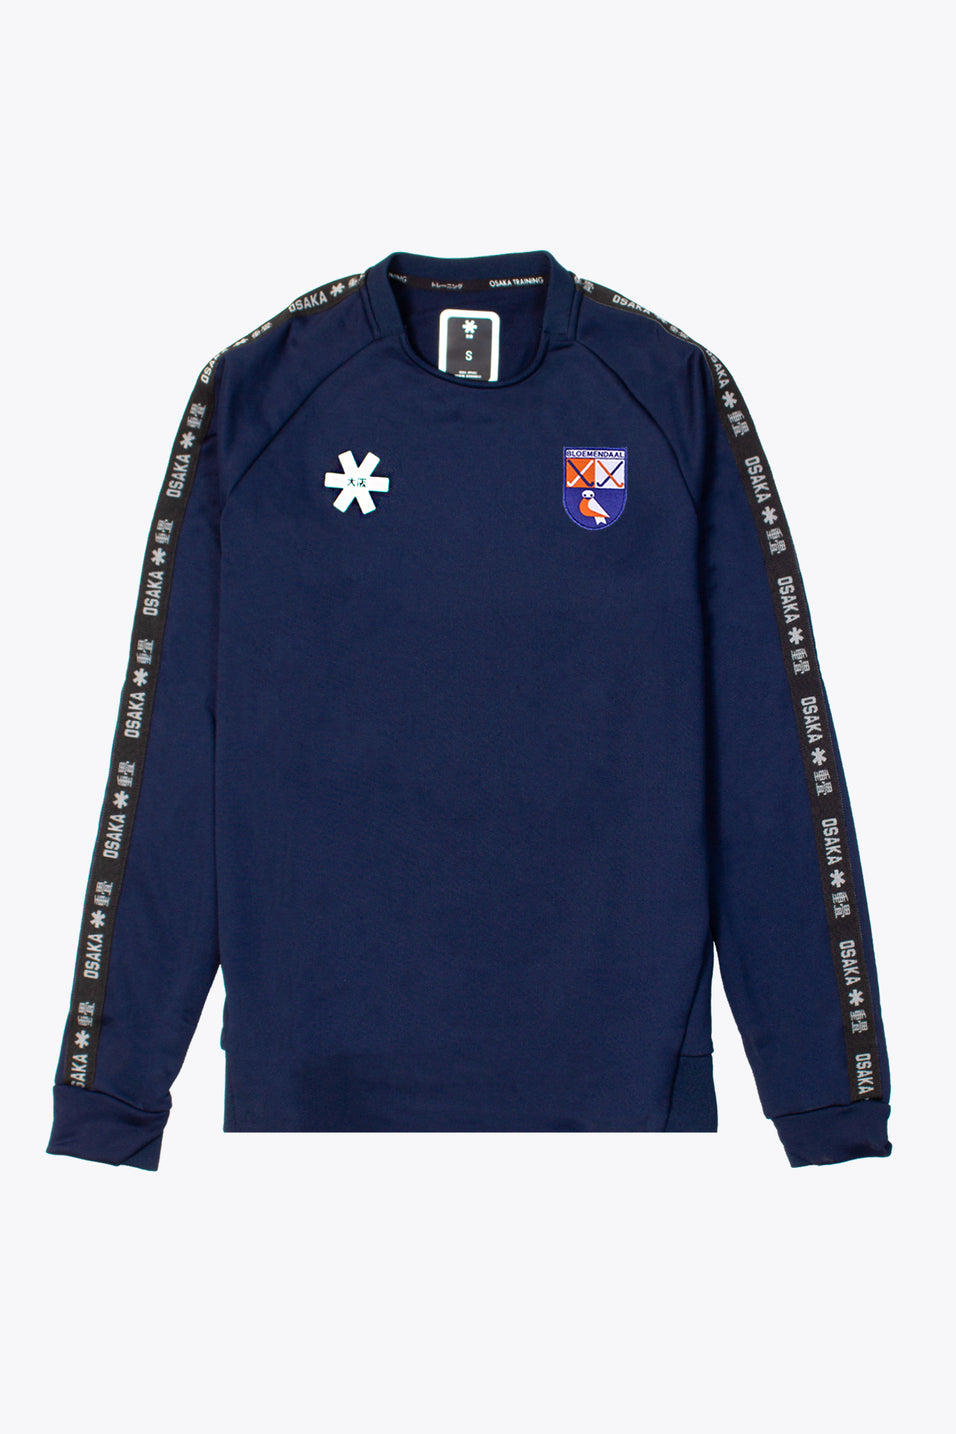 HC Bloemendaal Men Training Sweater - Navy